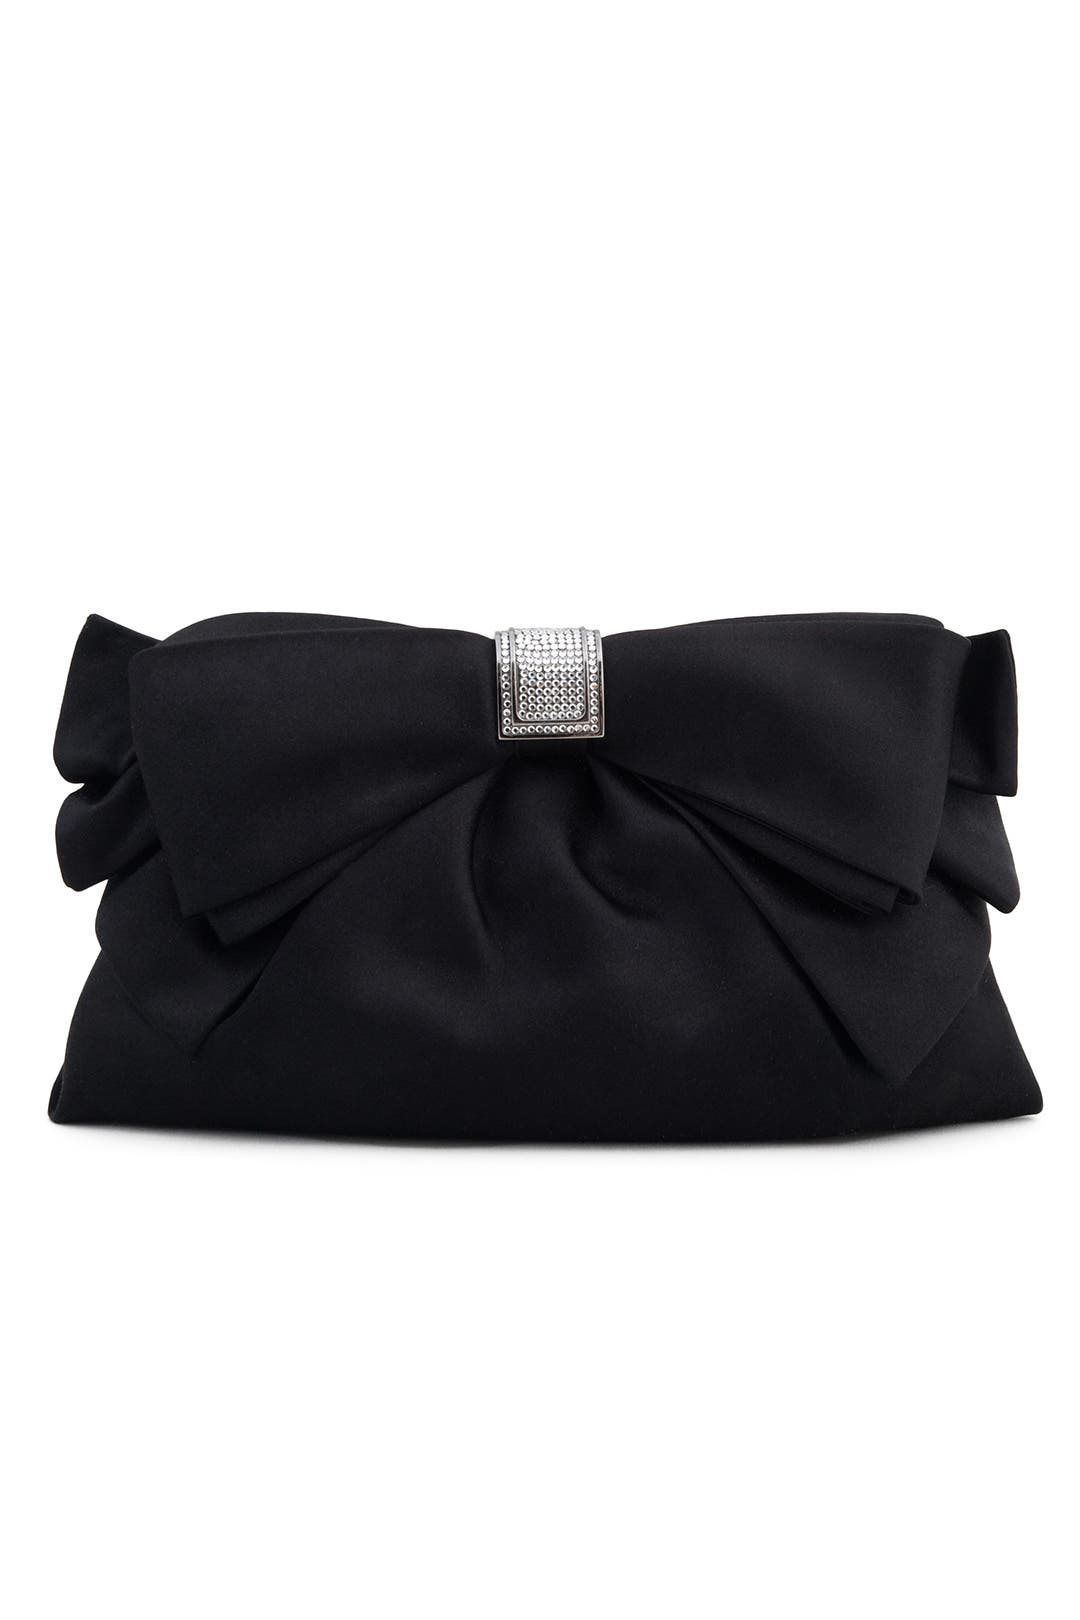 Lady Duchess Bag by Judith Leiber